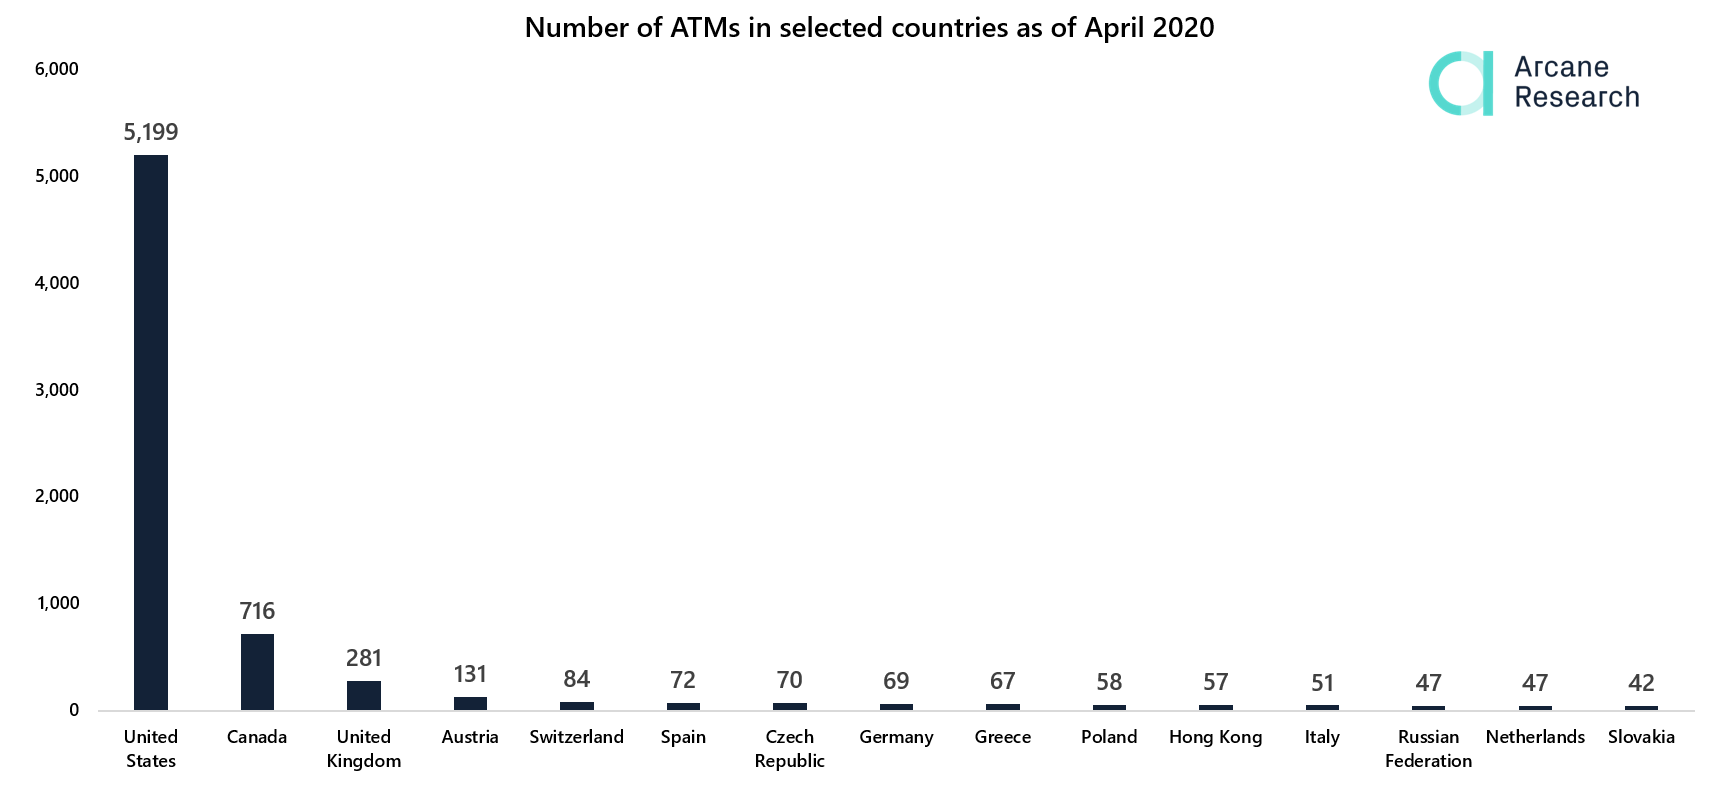 Number of Bitcoin ATMs in Selected Countries by Arcane Research